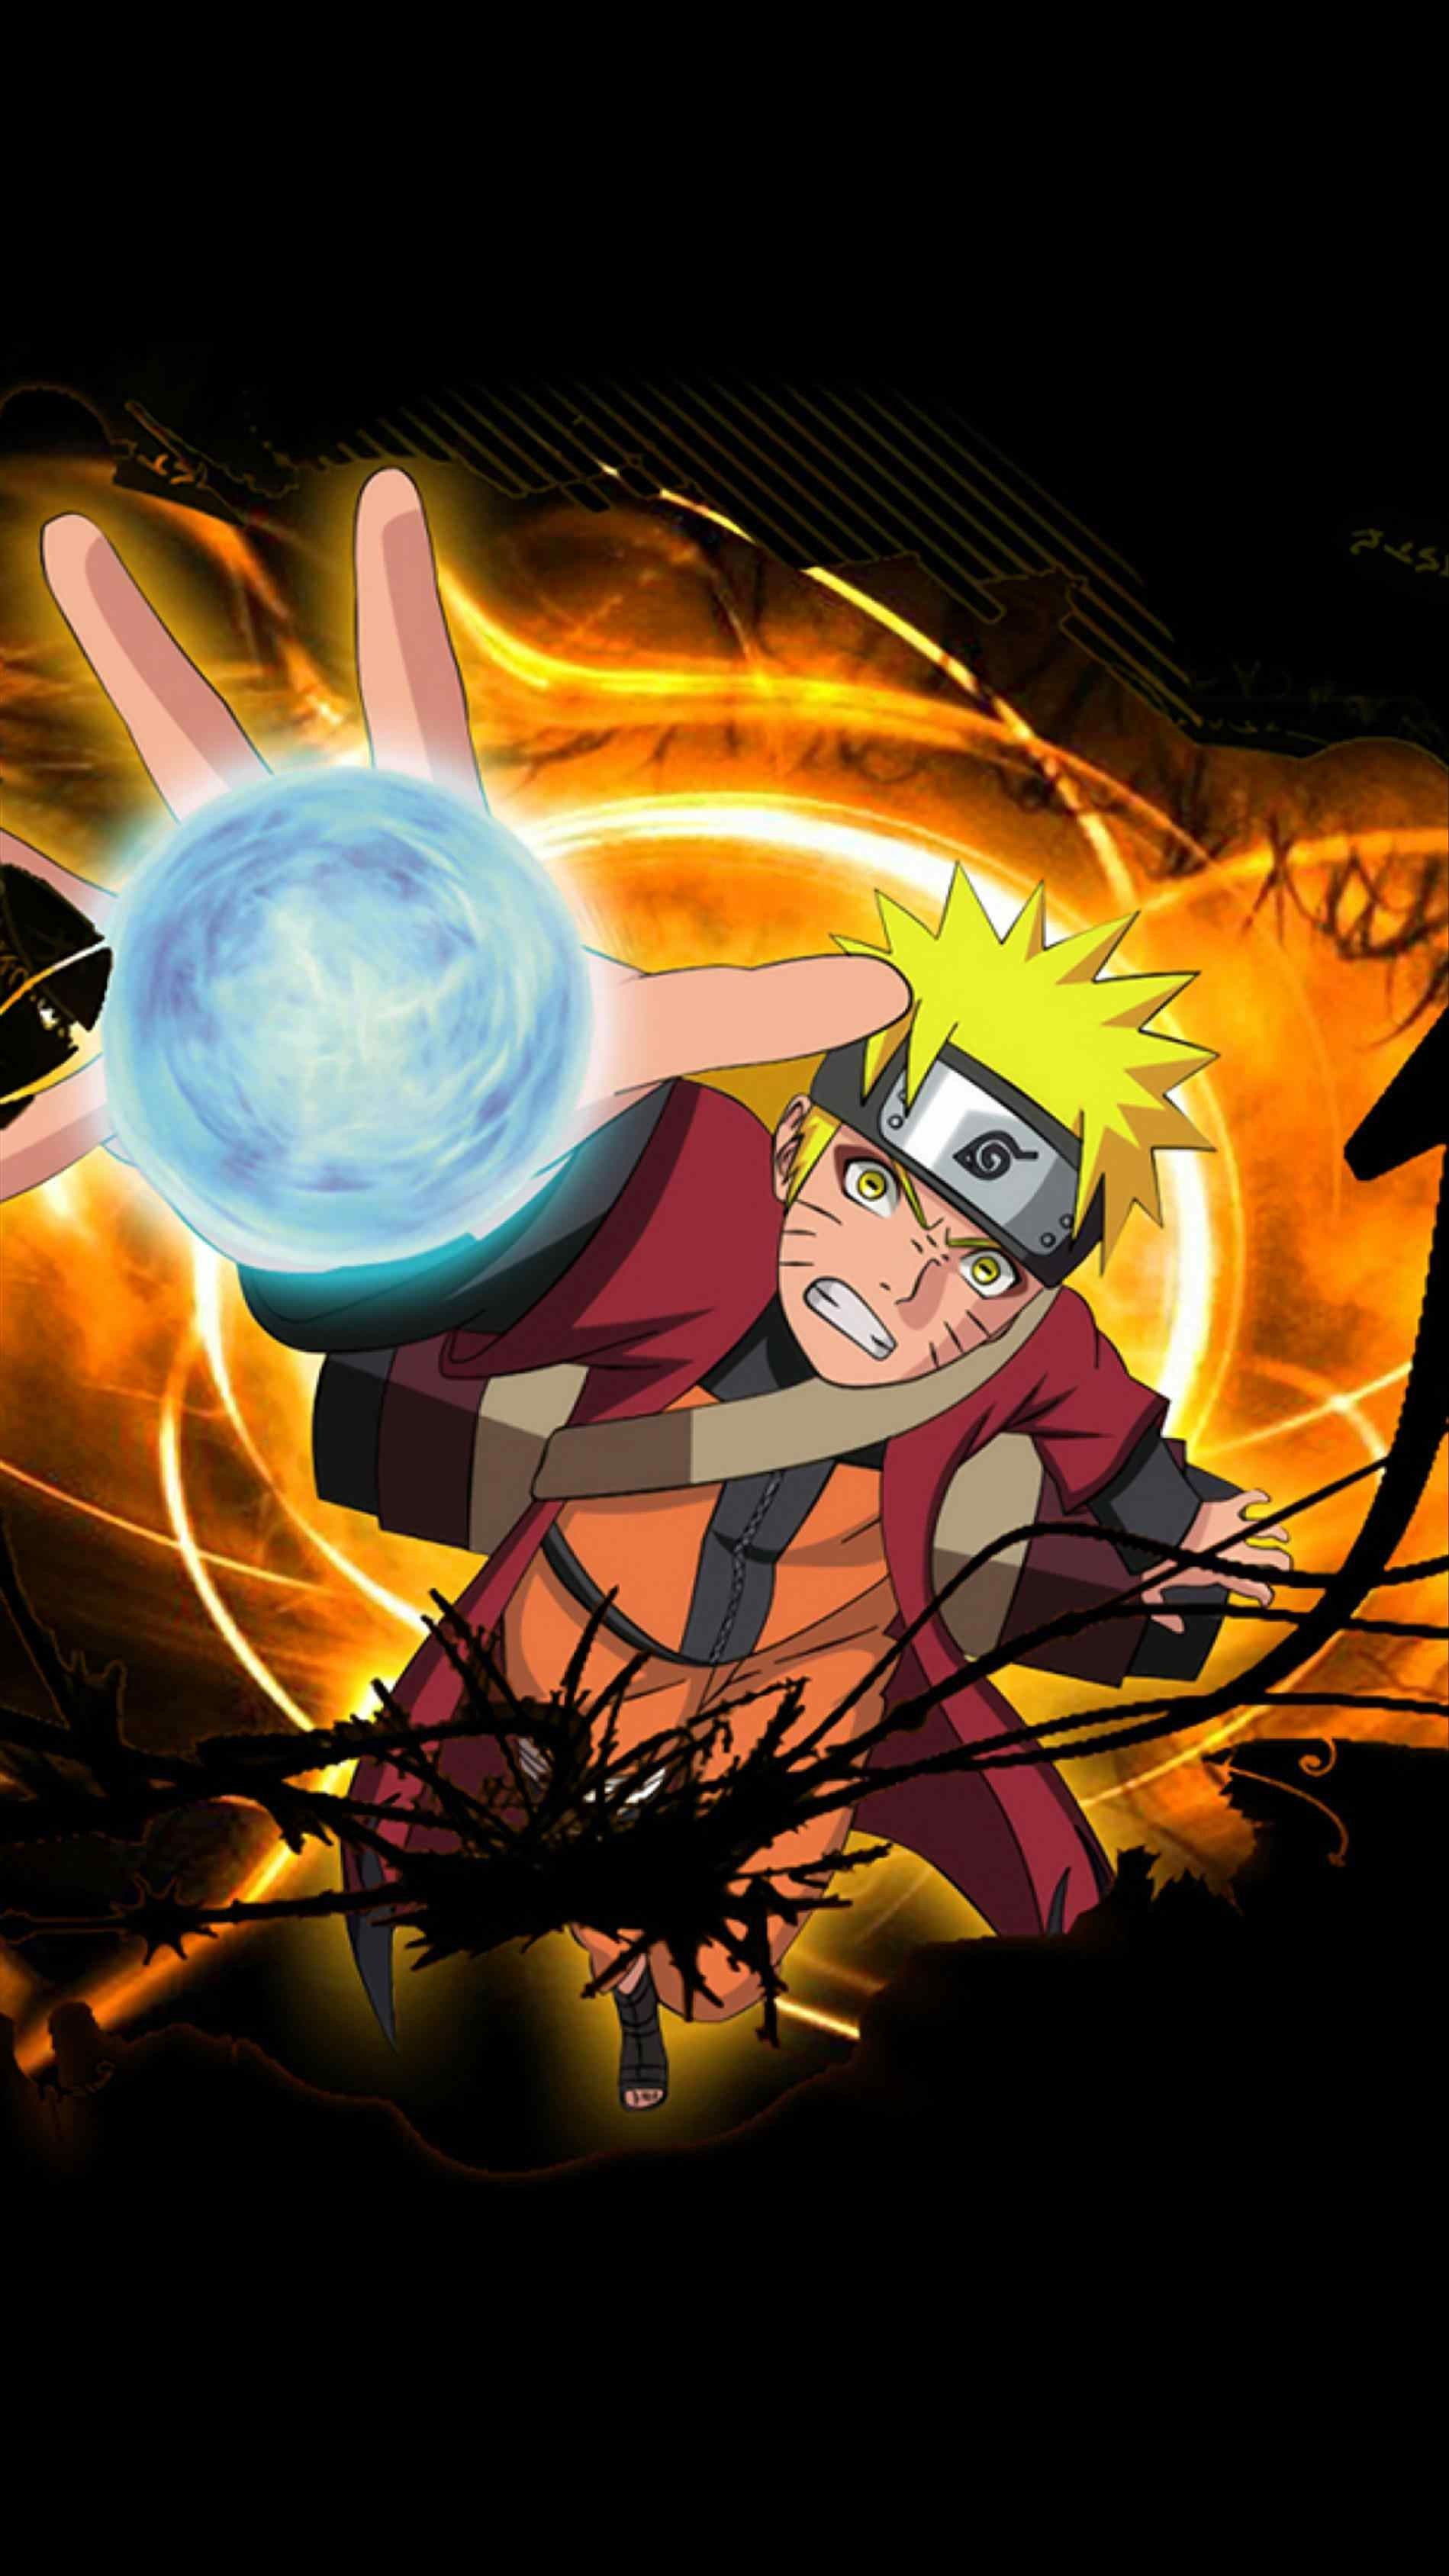 Naruto Rasengan Wallpapers Top Free Naruto Rasengan Backgrounds Wallpaperaccess